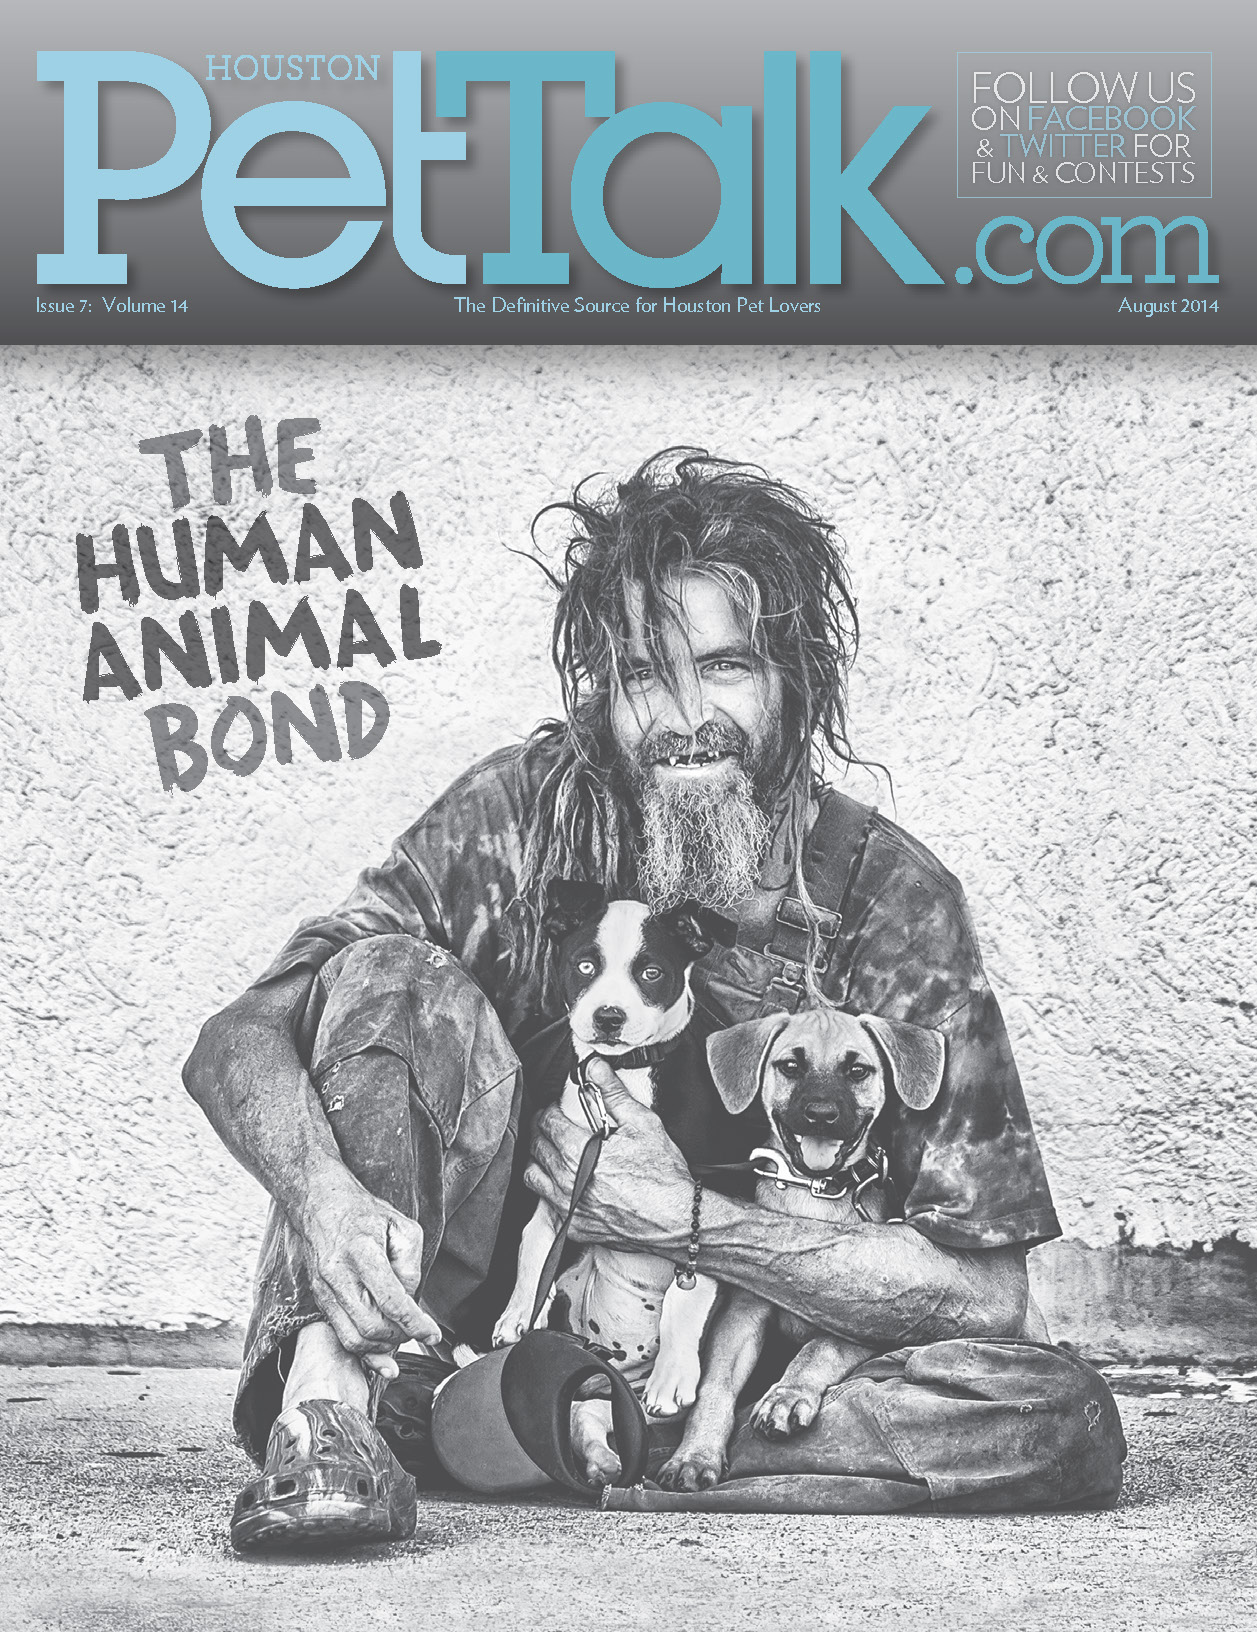 August 2014 Digital Issue of Houston PetTalk